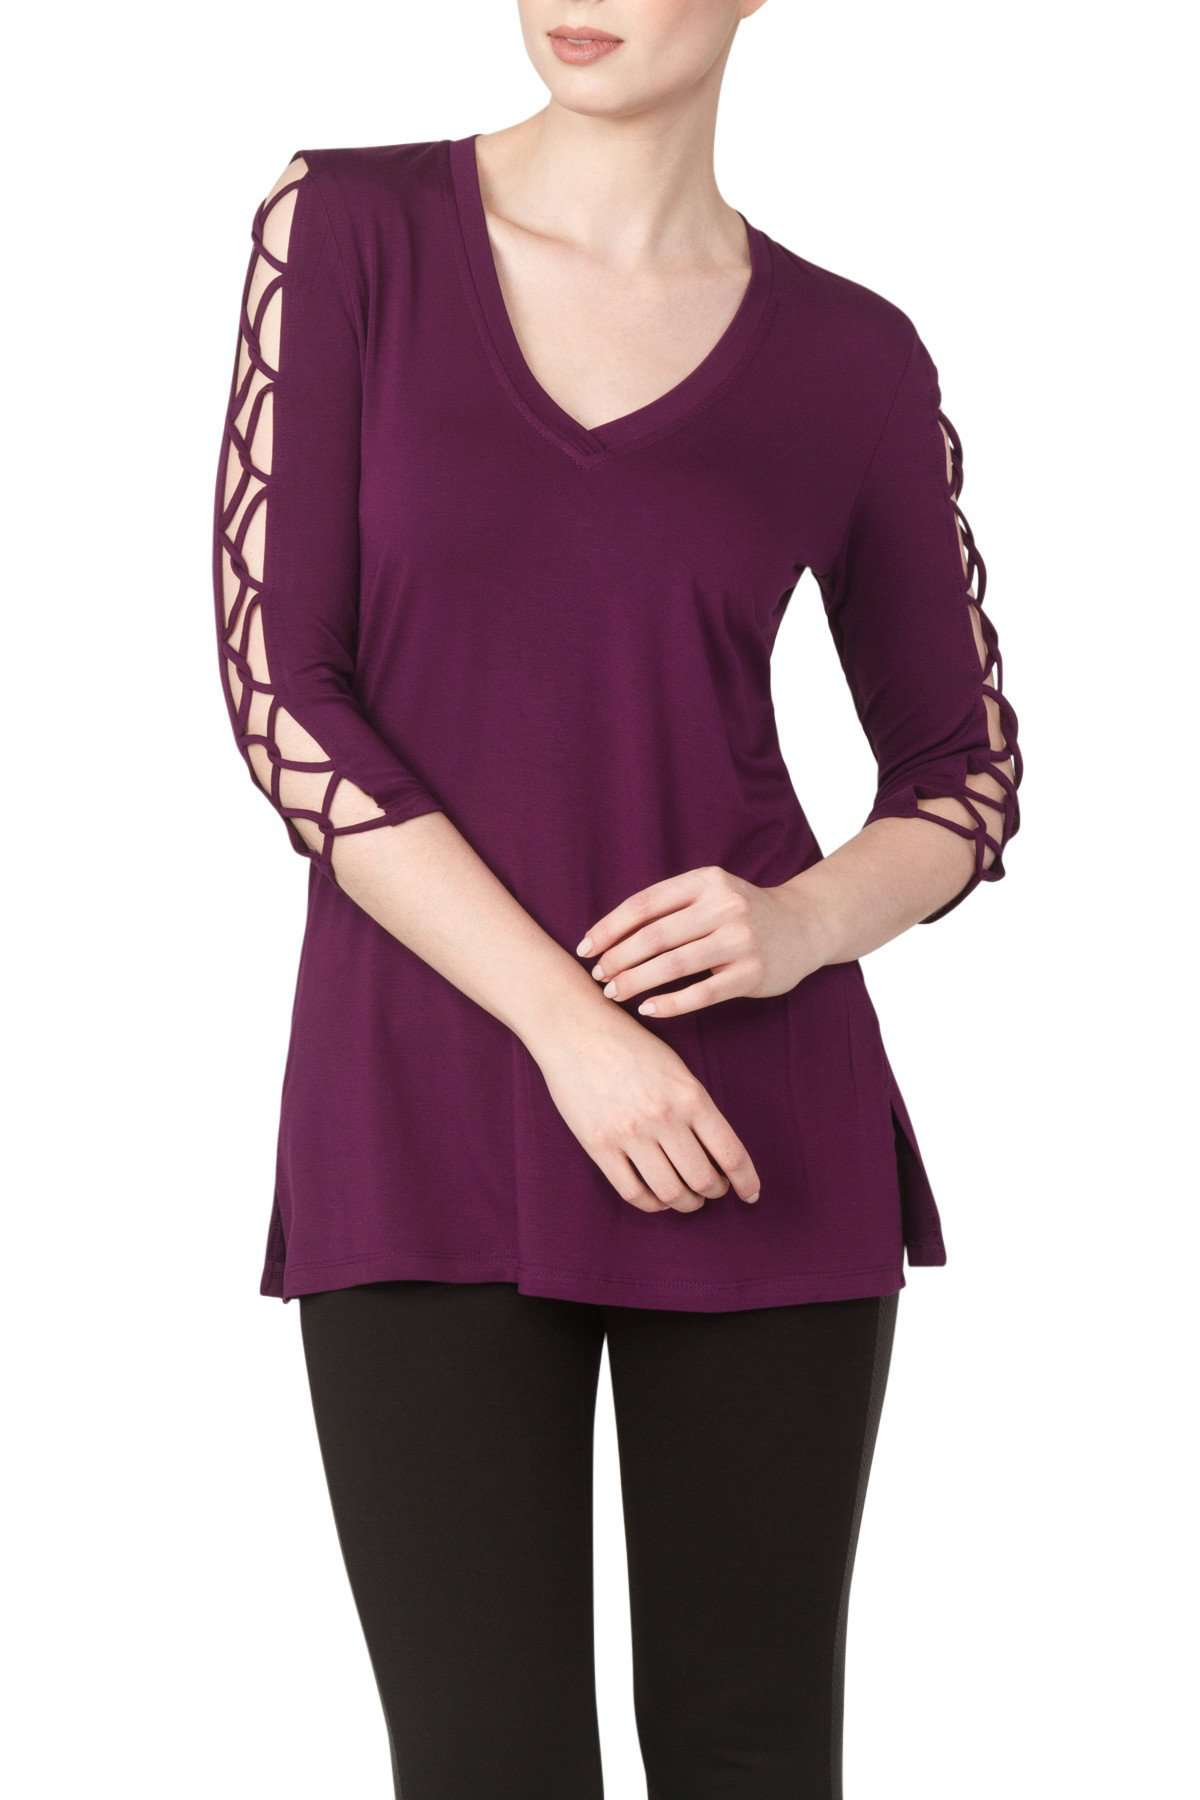 Purple Top Sexy Sleeves Soft Knit Fabric made in Canada - Yvonne Marie